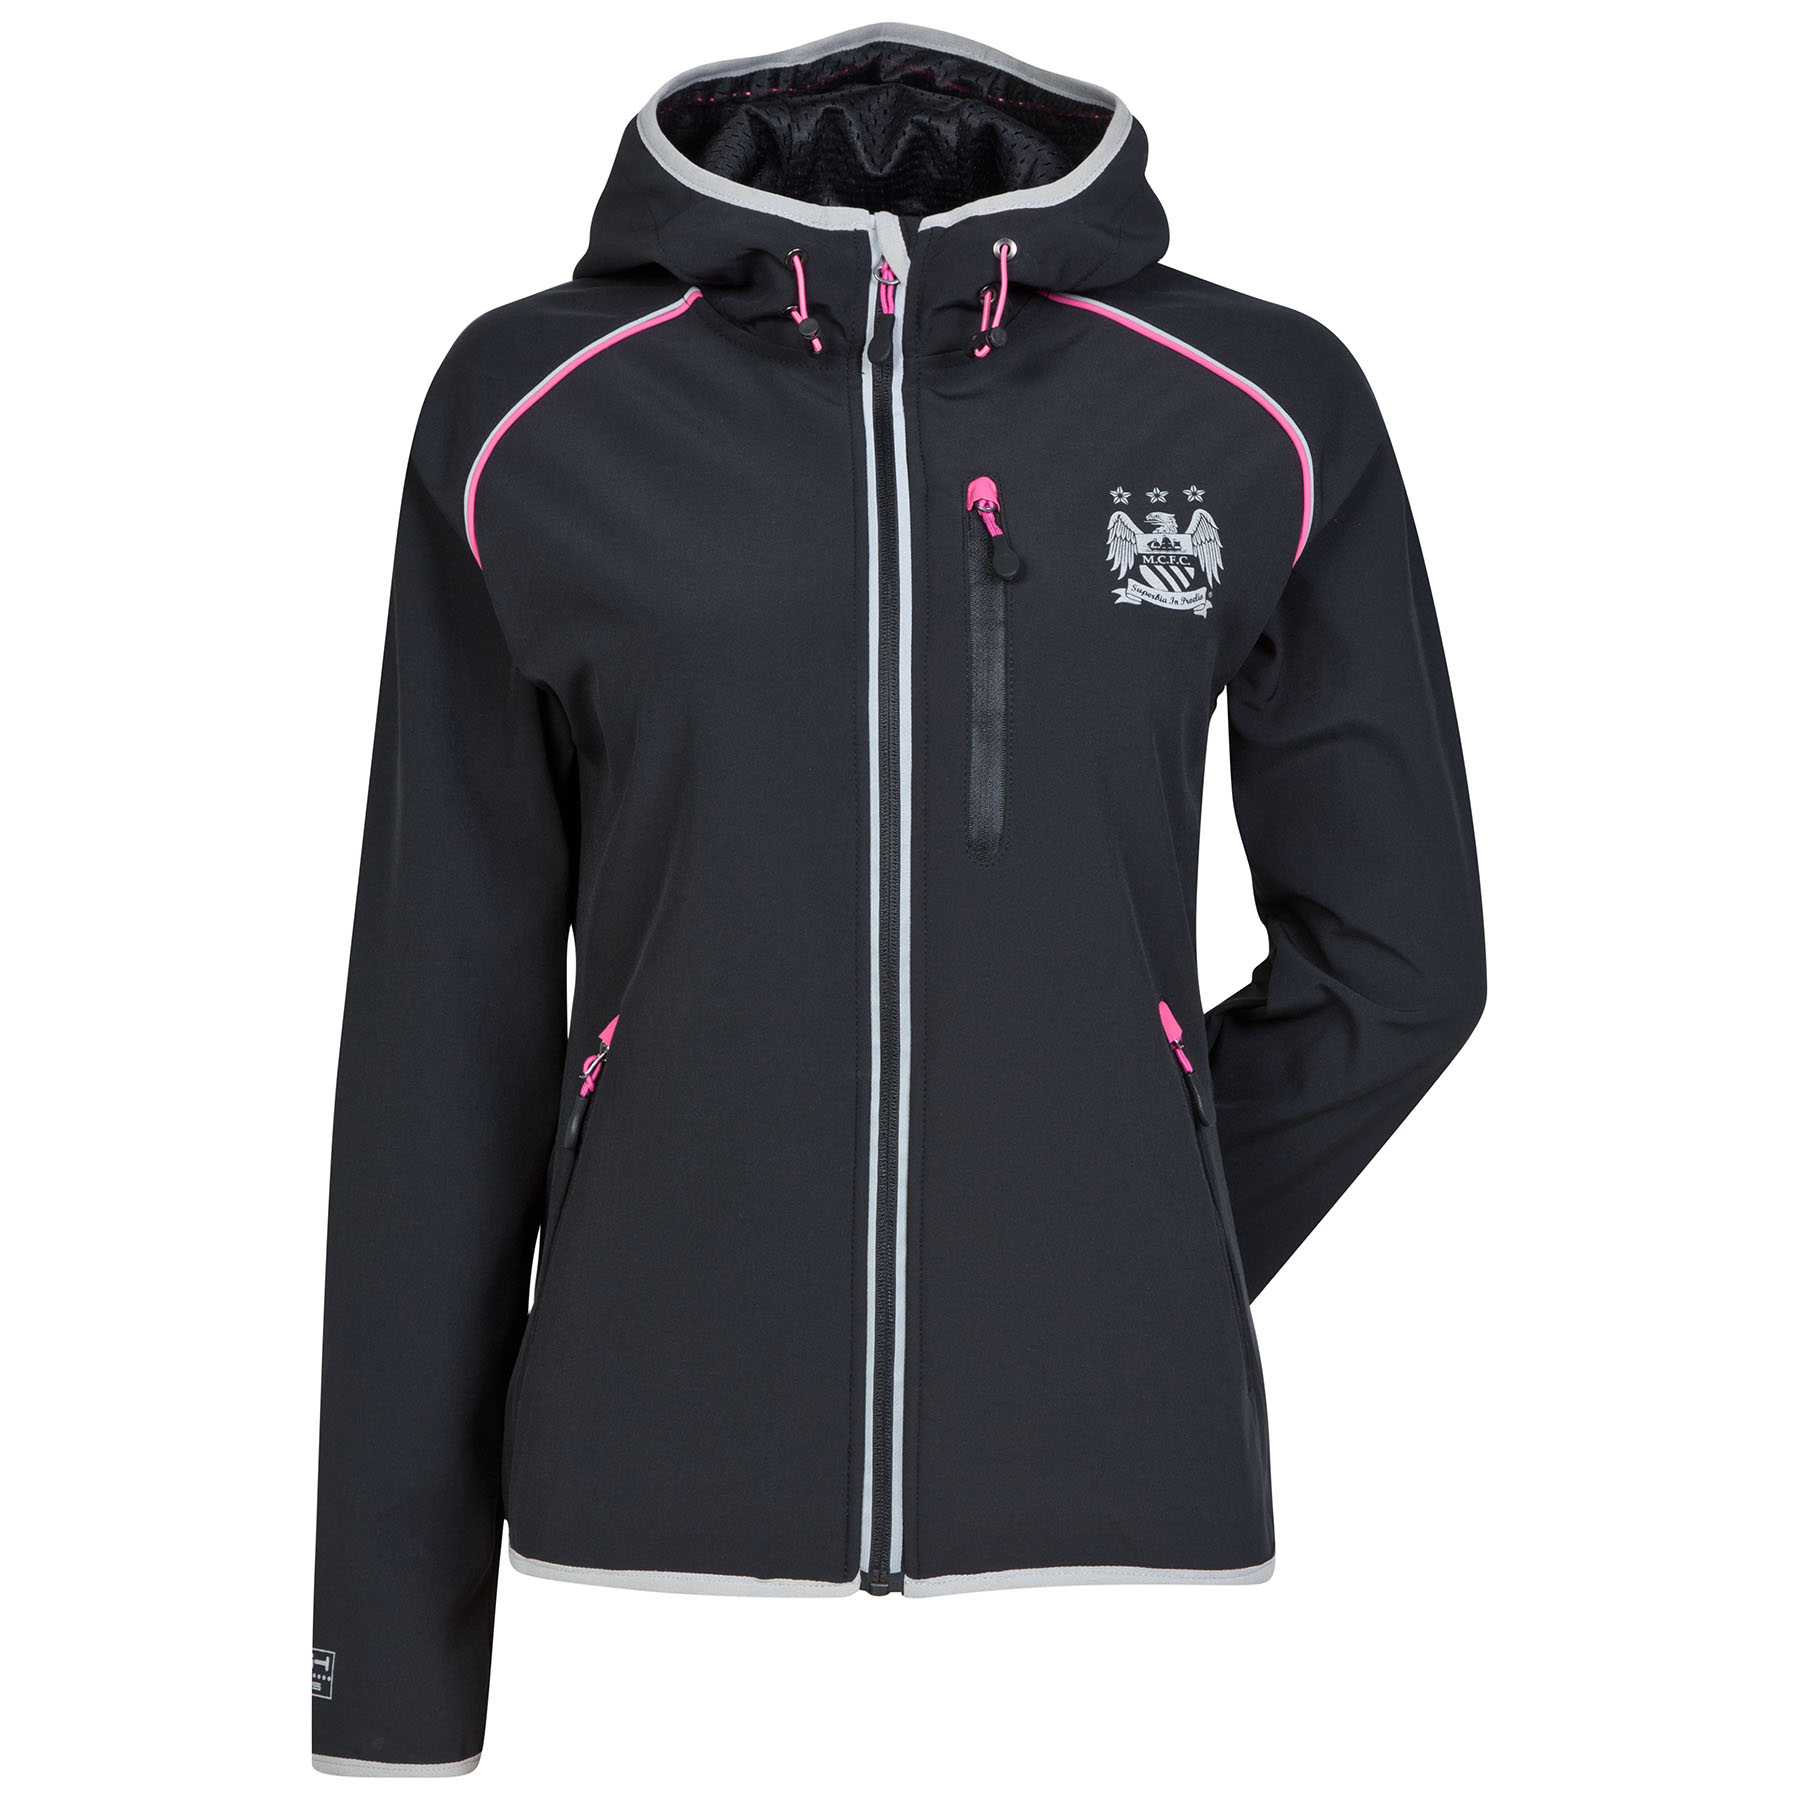 Manchester City Performance Softshell Jacket - Black - Womens